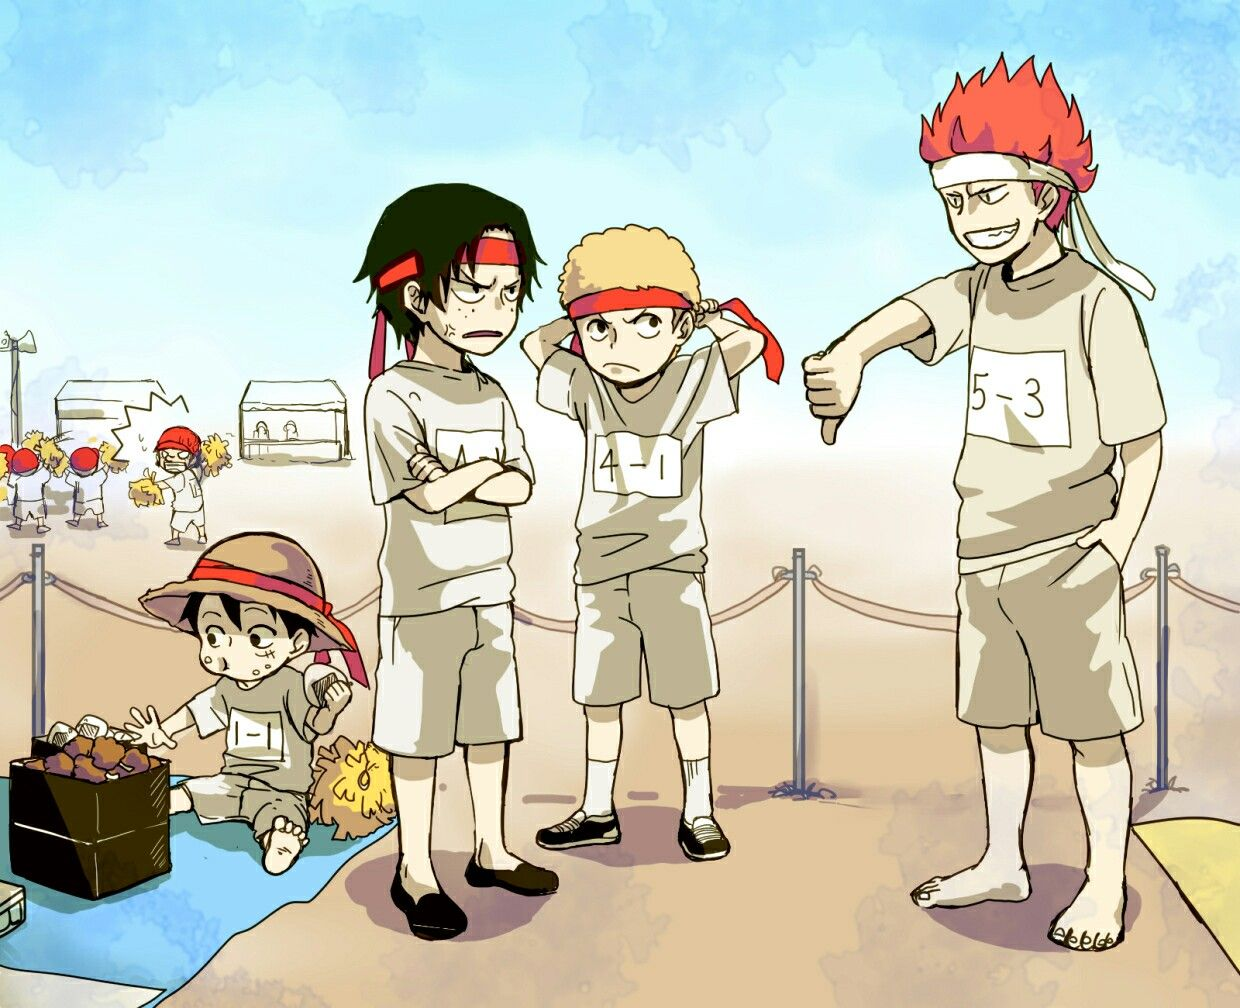 Ace, Sabo, Luffy, funny, Kid, young, childhood, school, gym